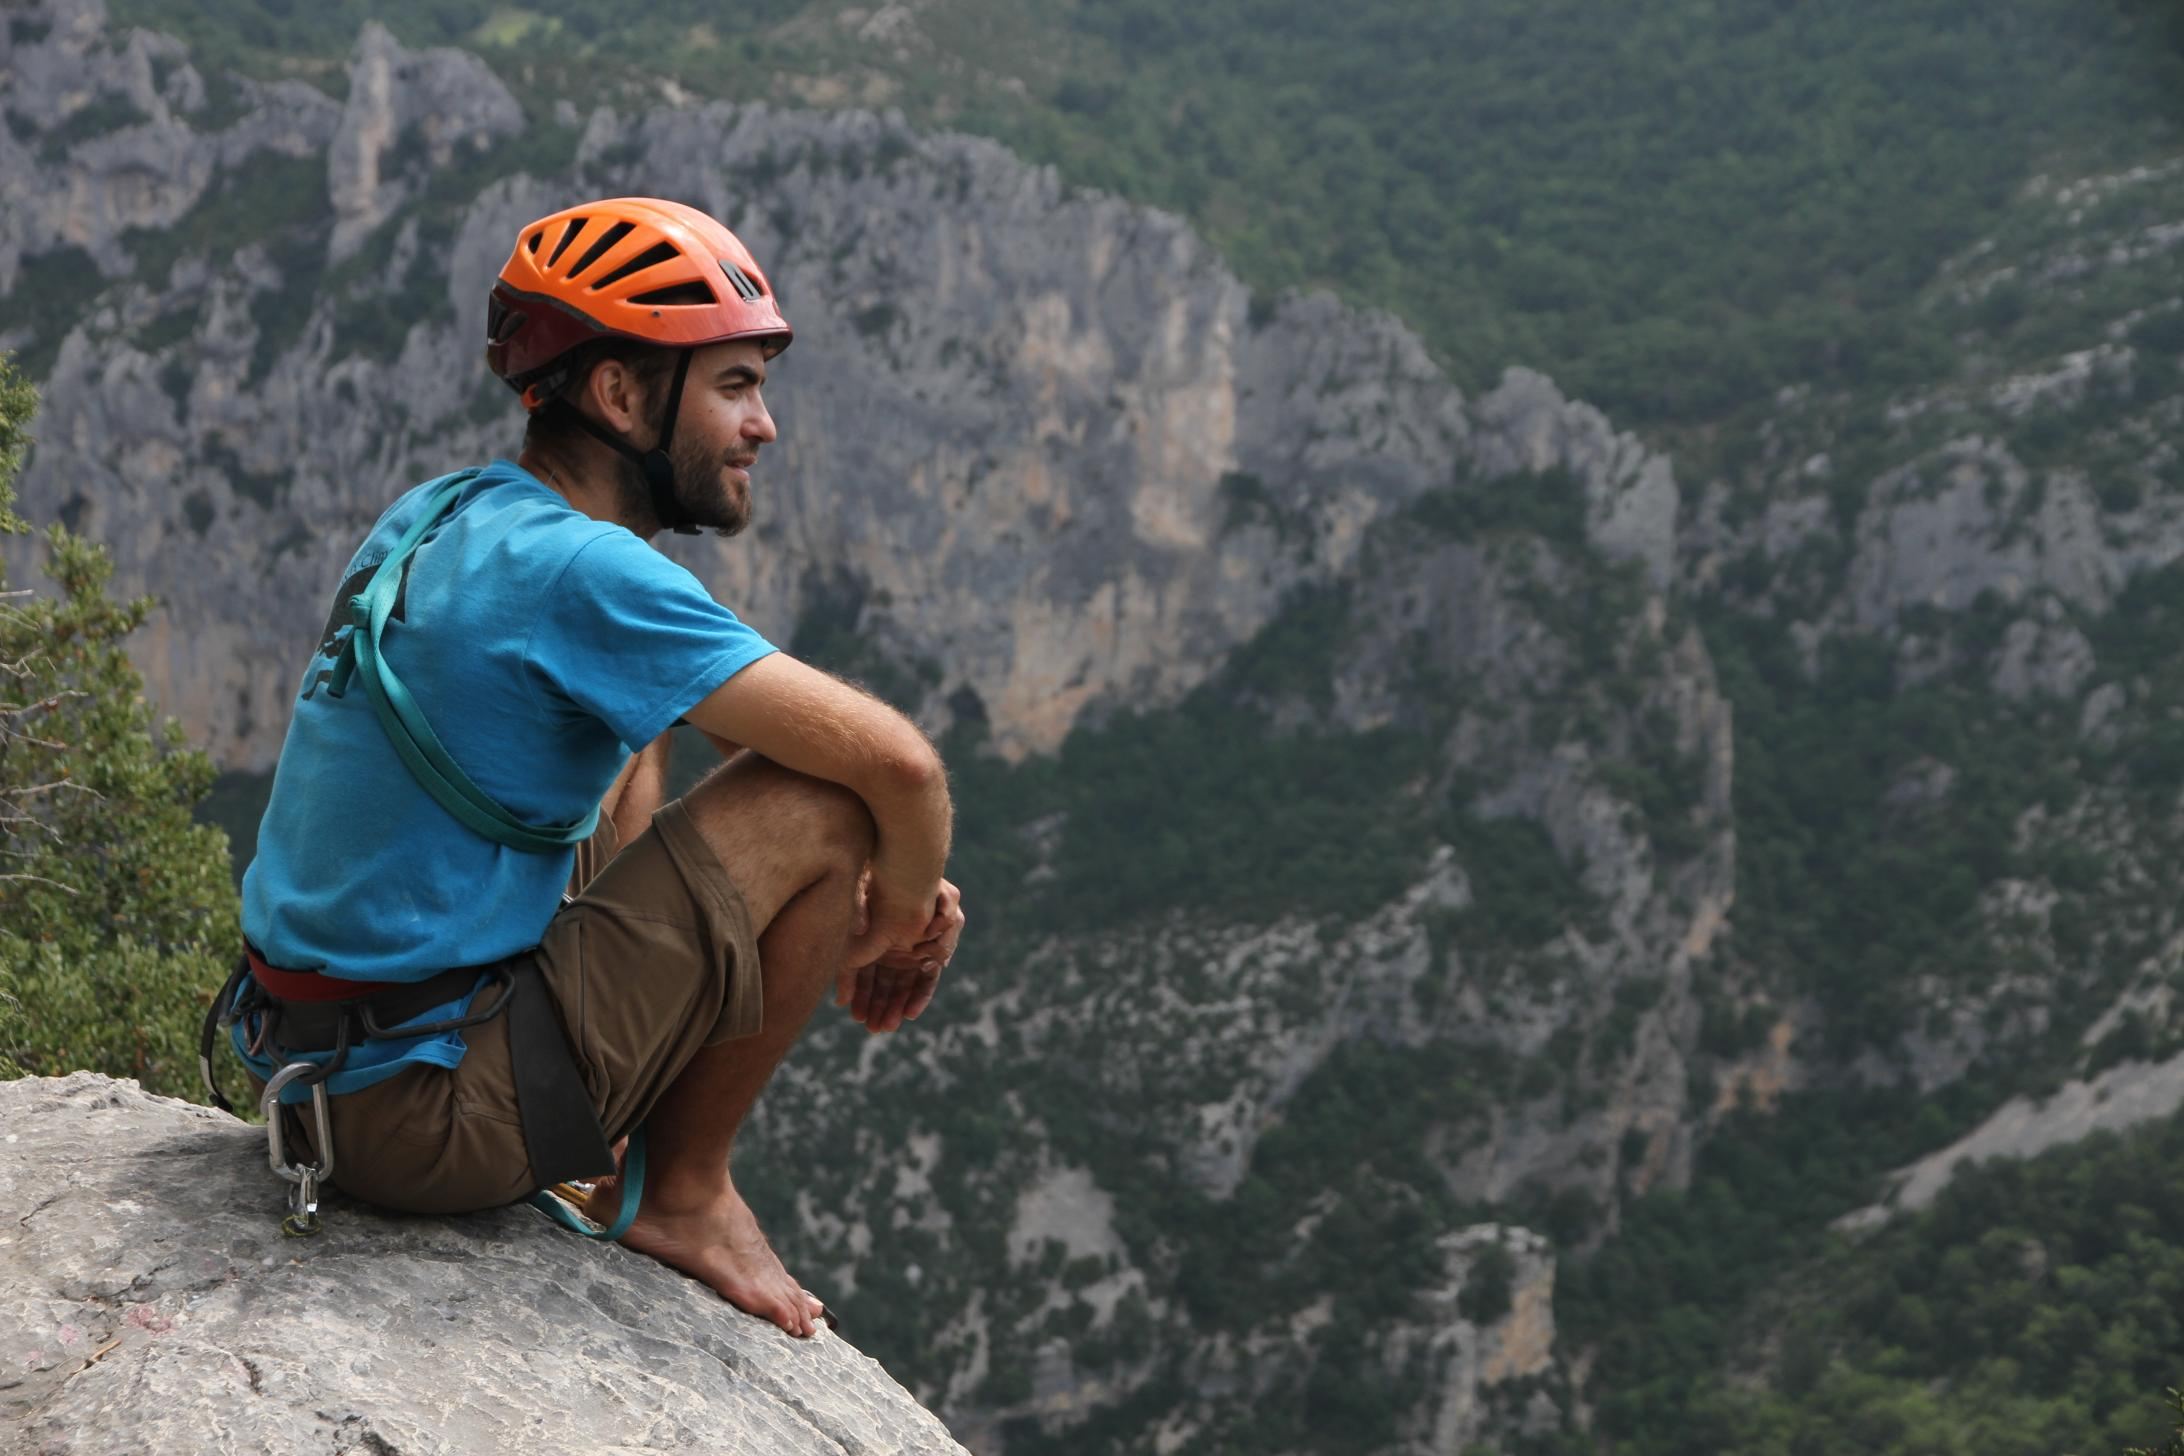 French_Guillaume profile_Rock climbing_IMG_8808.jpg